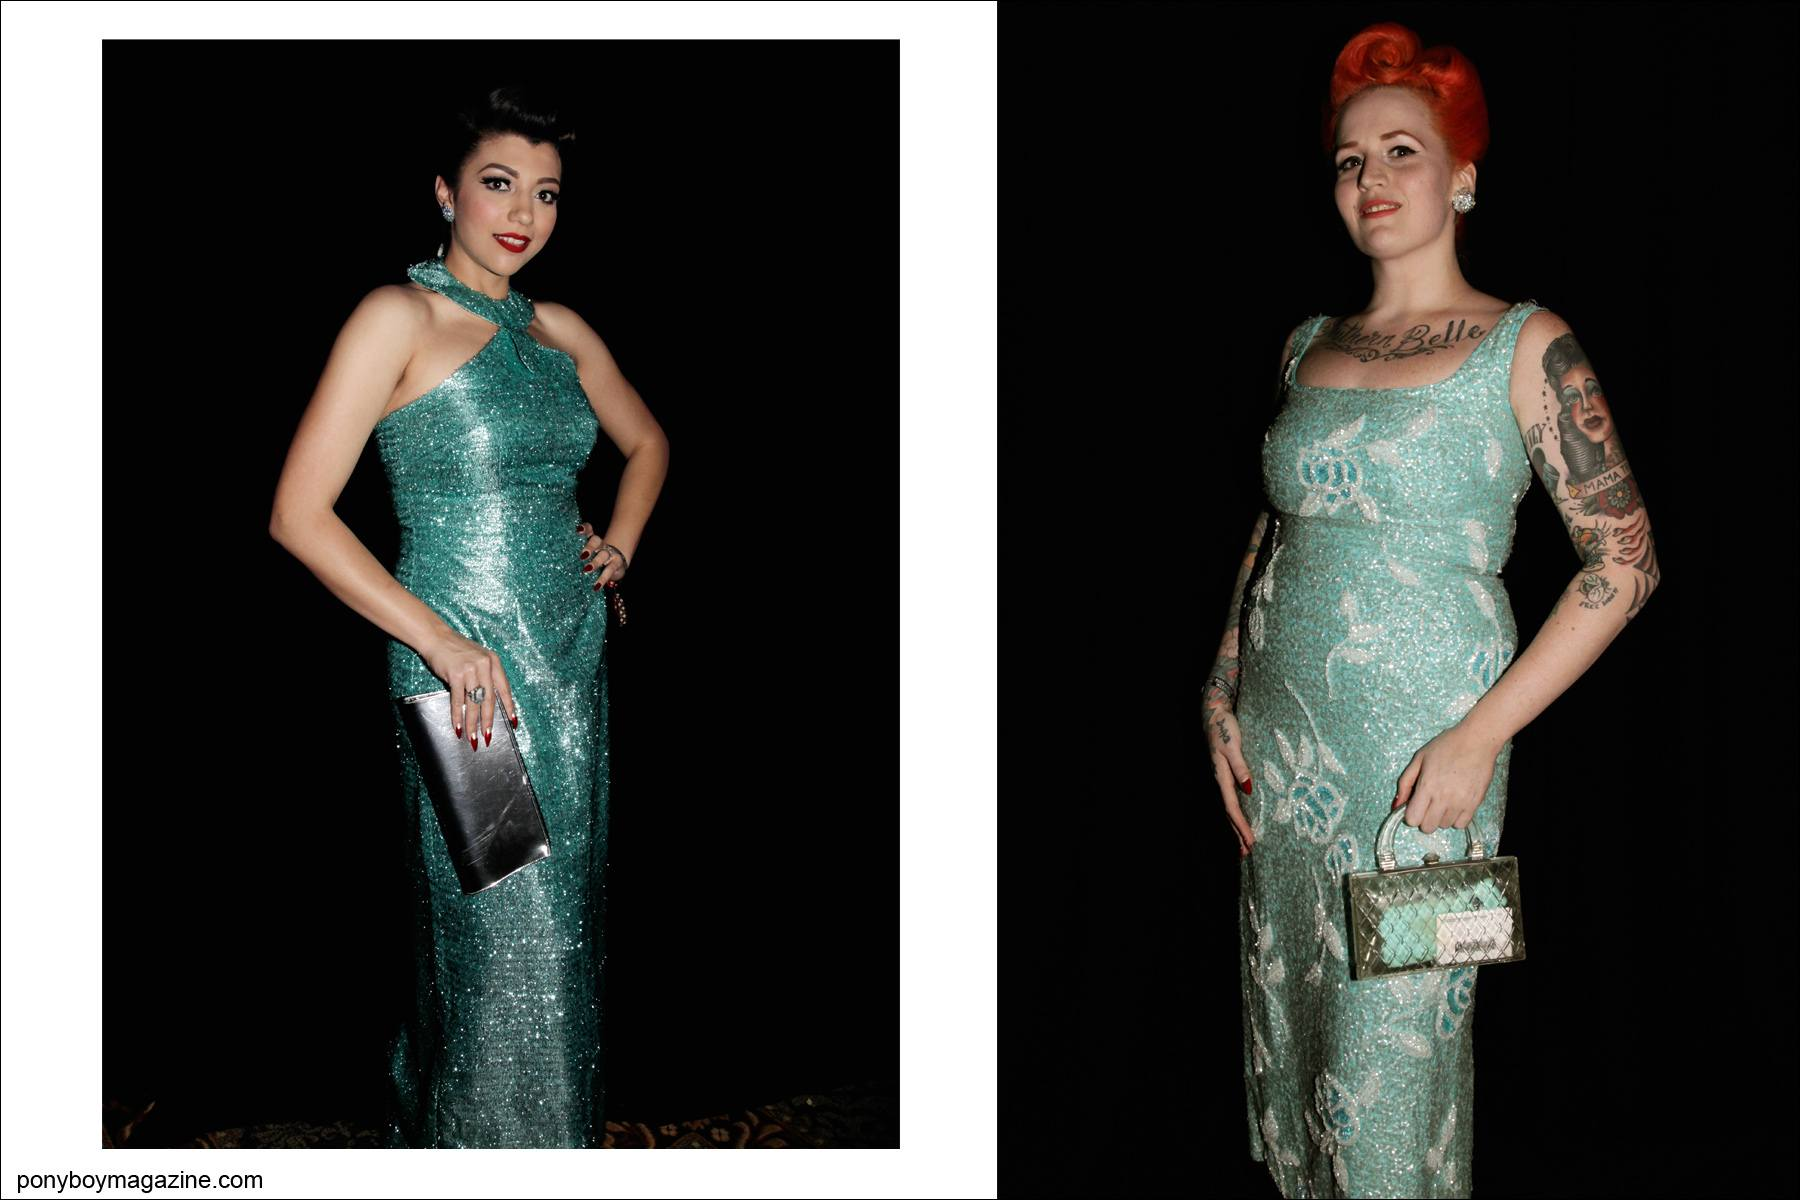 Classic 1950's women's evening wear photographed by Alexander Thompson at rockabilly weekender Viva Las Vegas for Ponyboy Magazine.